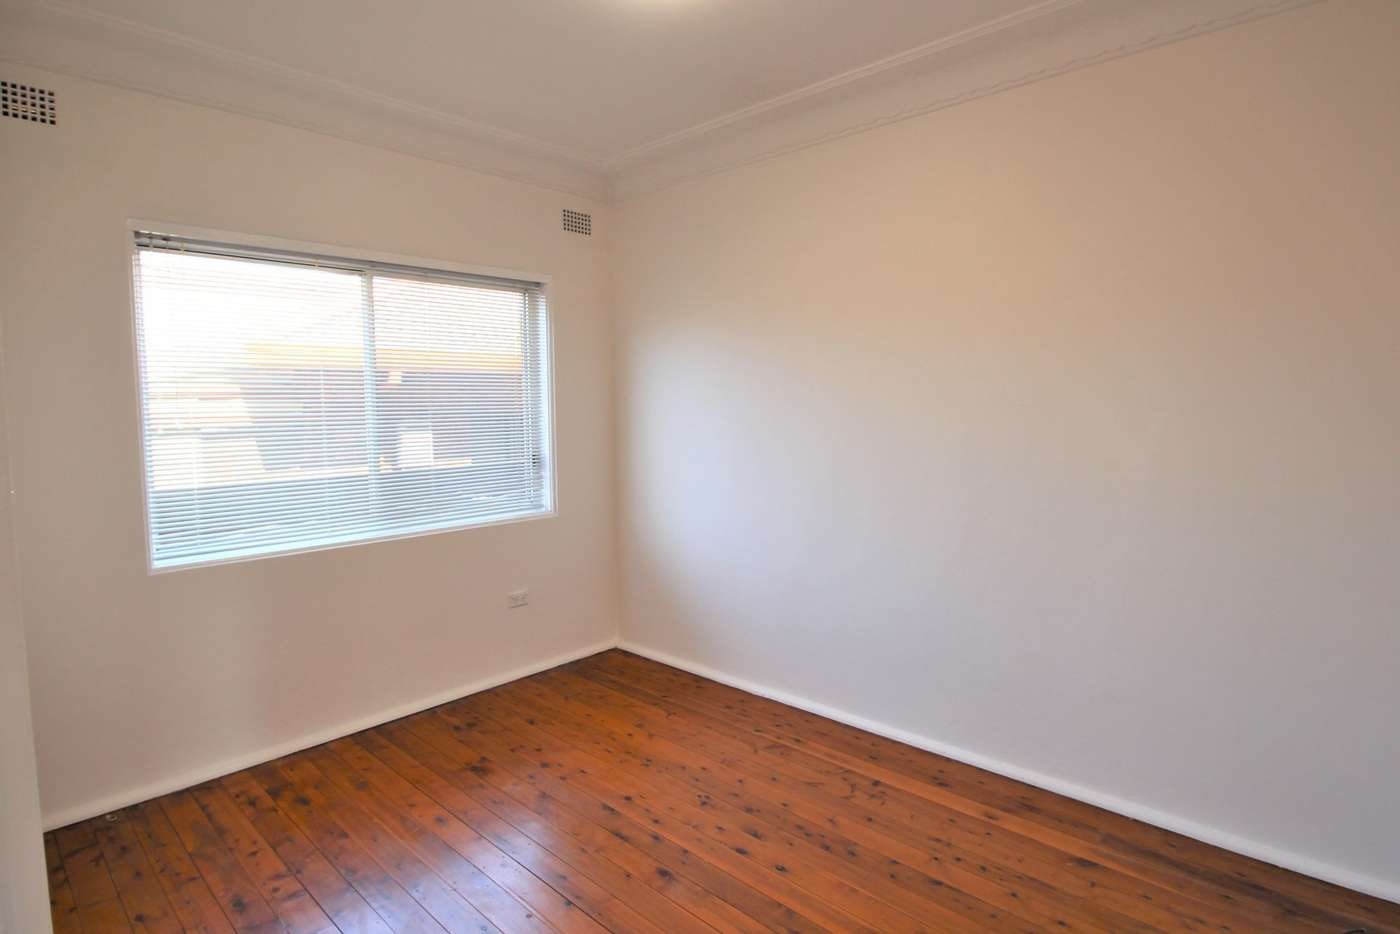 Sixth view of Homely unit listing, 4/77 Moate Avenue, Brighton-le-sands NSW 2216